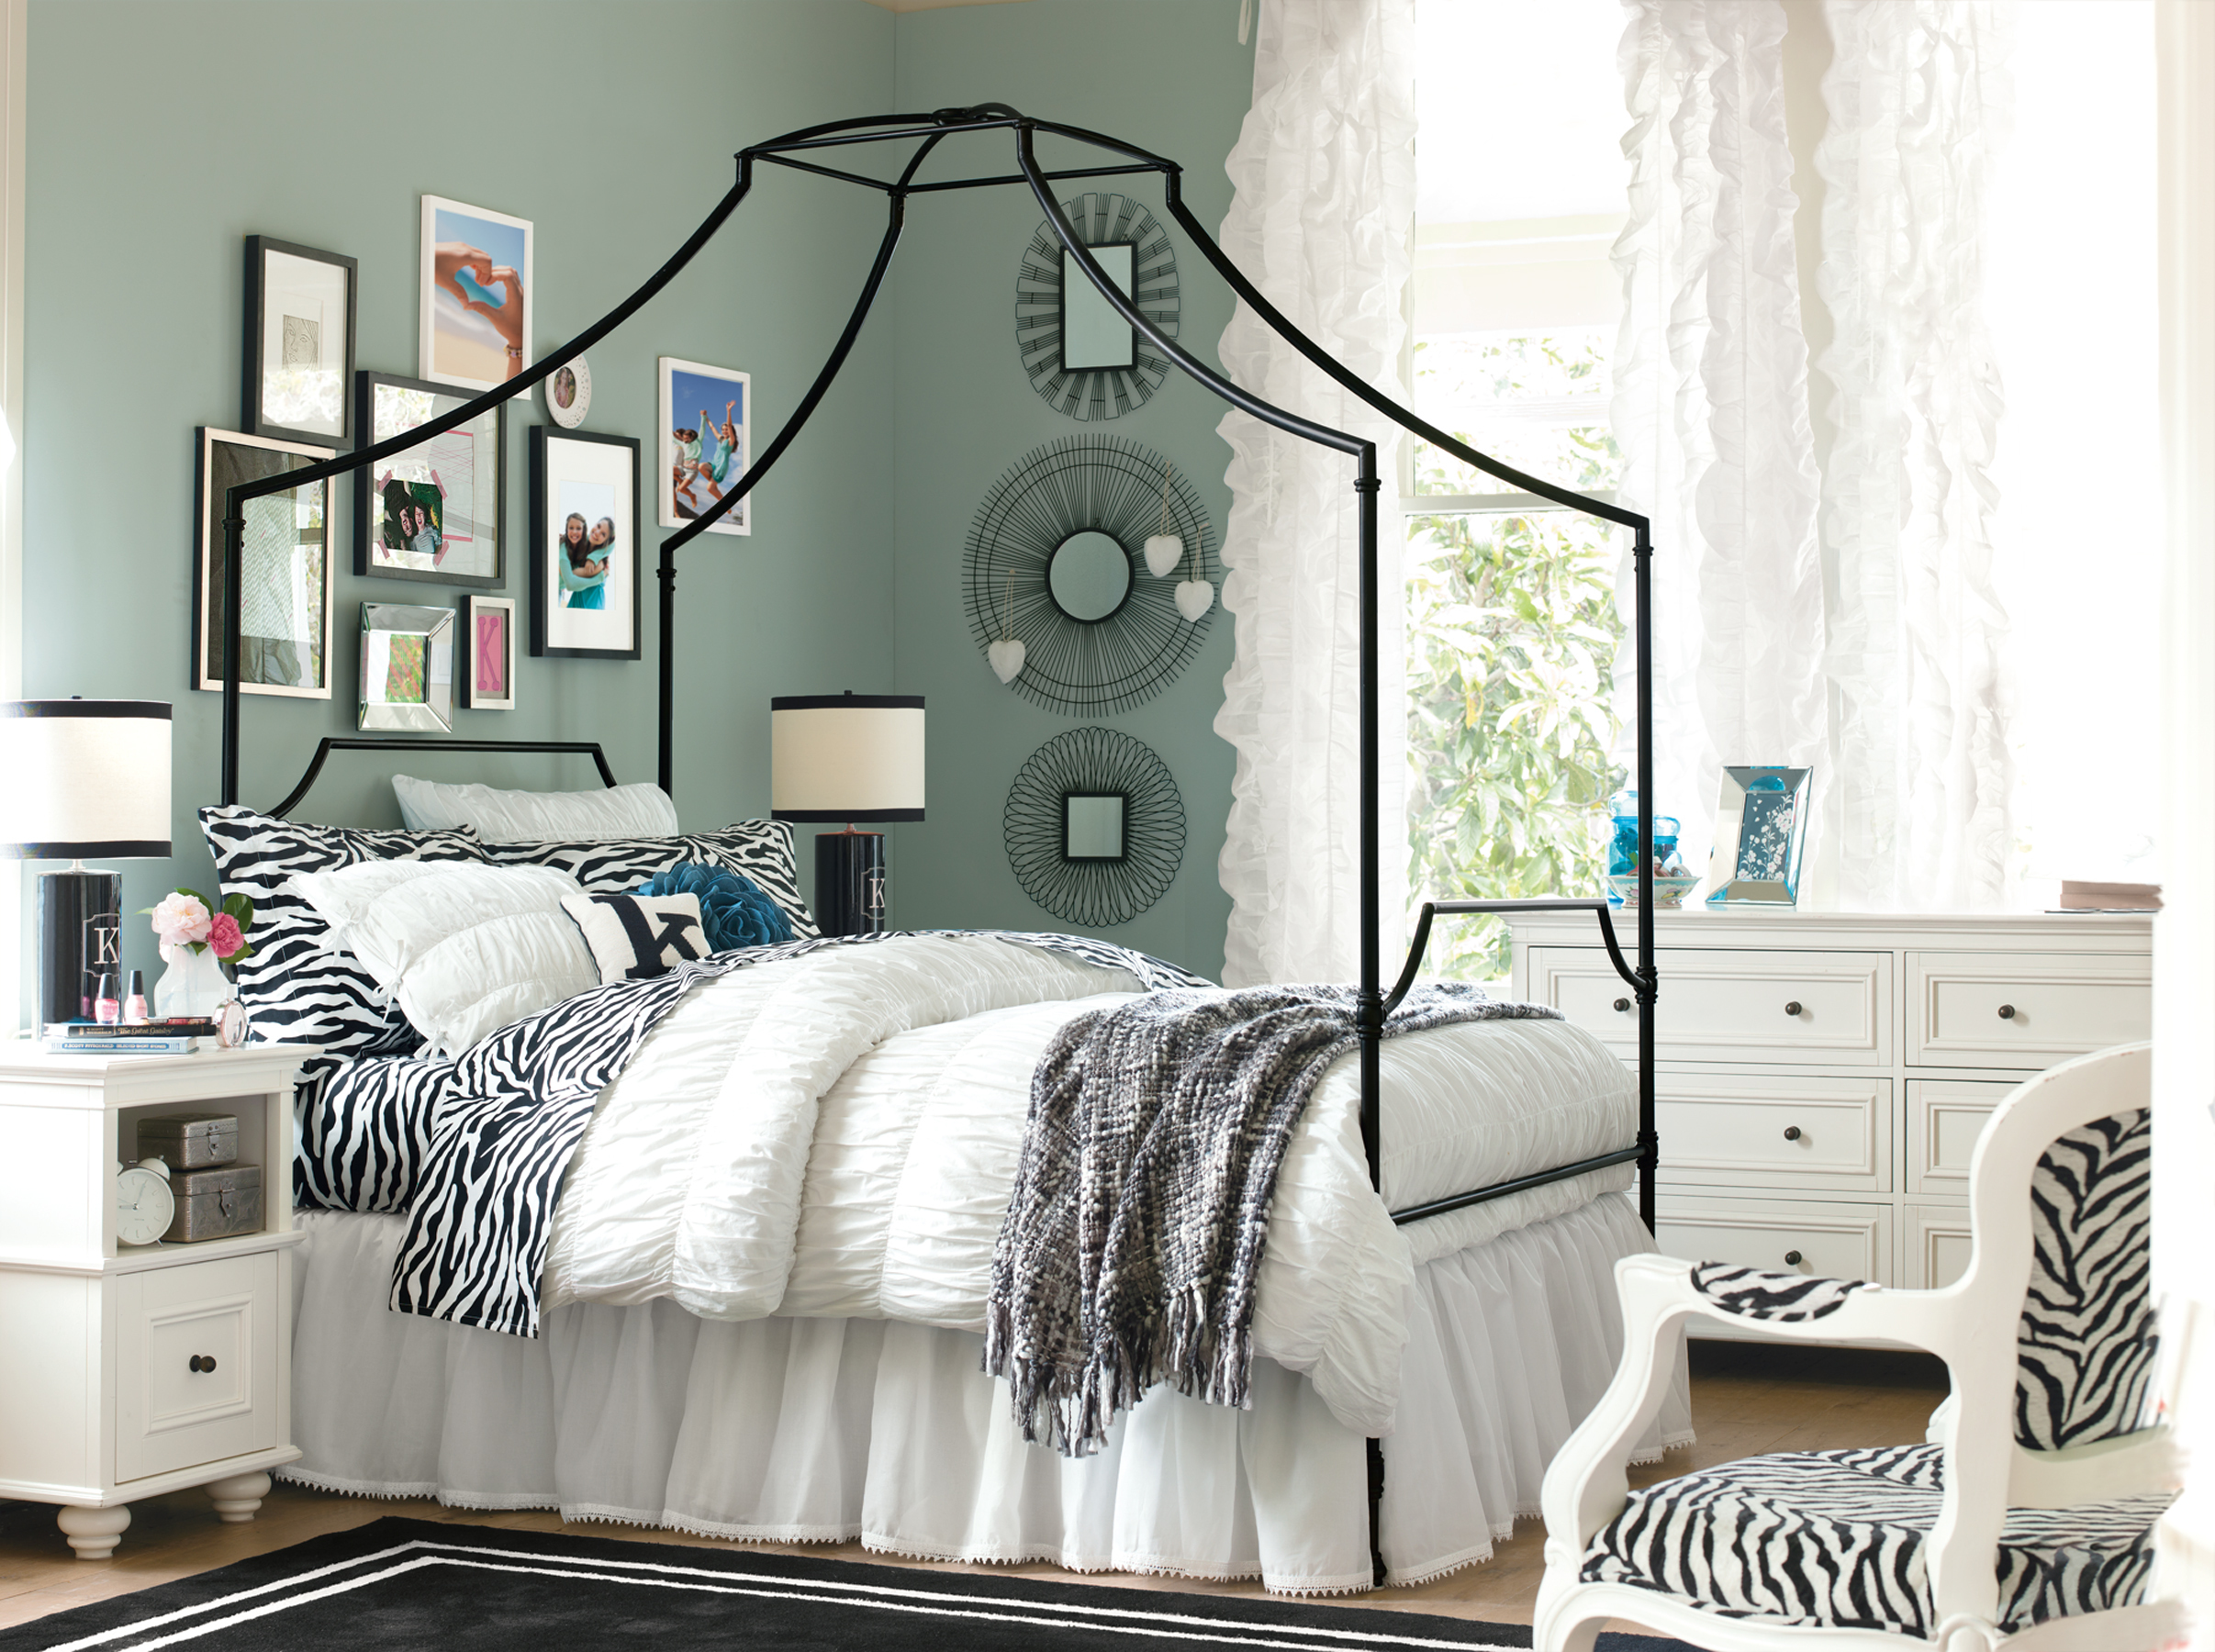 Pottery Barn Bedding - Teen Style - HomesFeed on Beautiful Rooms For Teenage Girls  id=11738